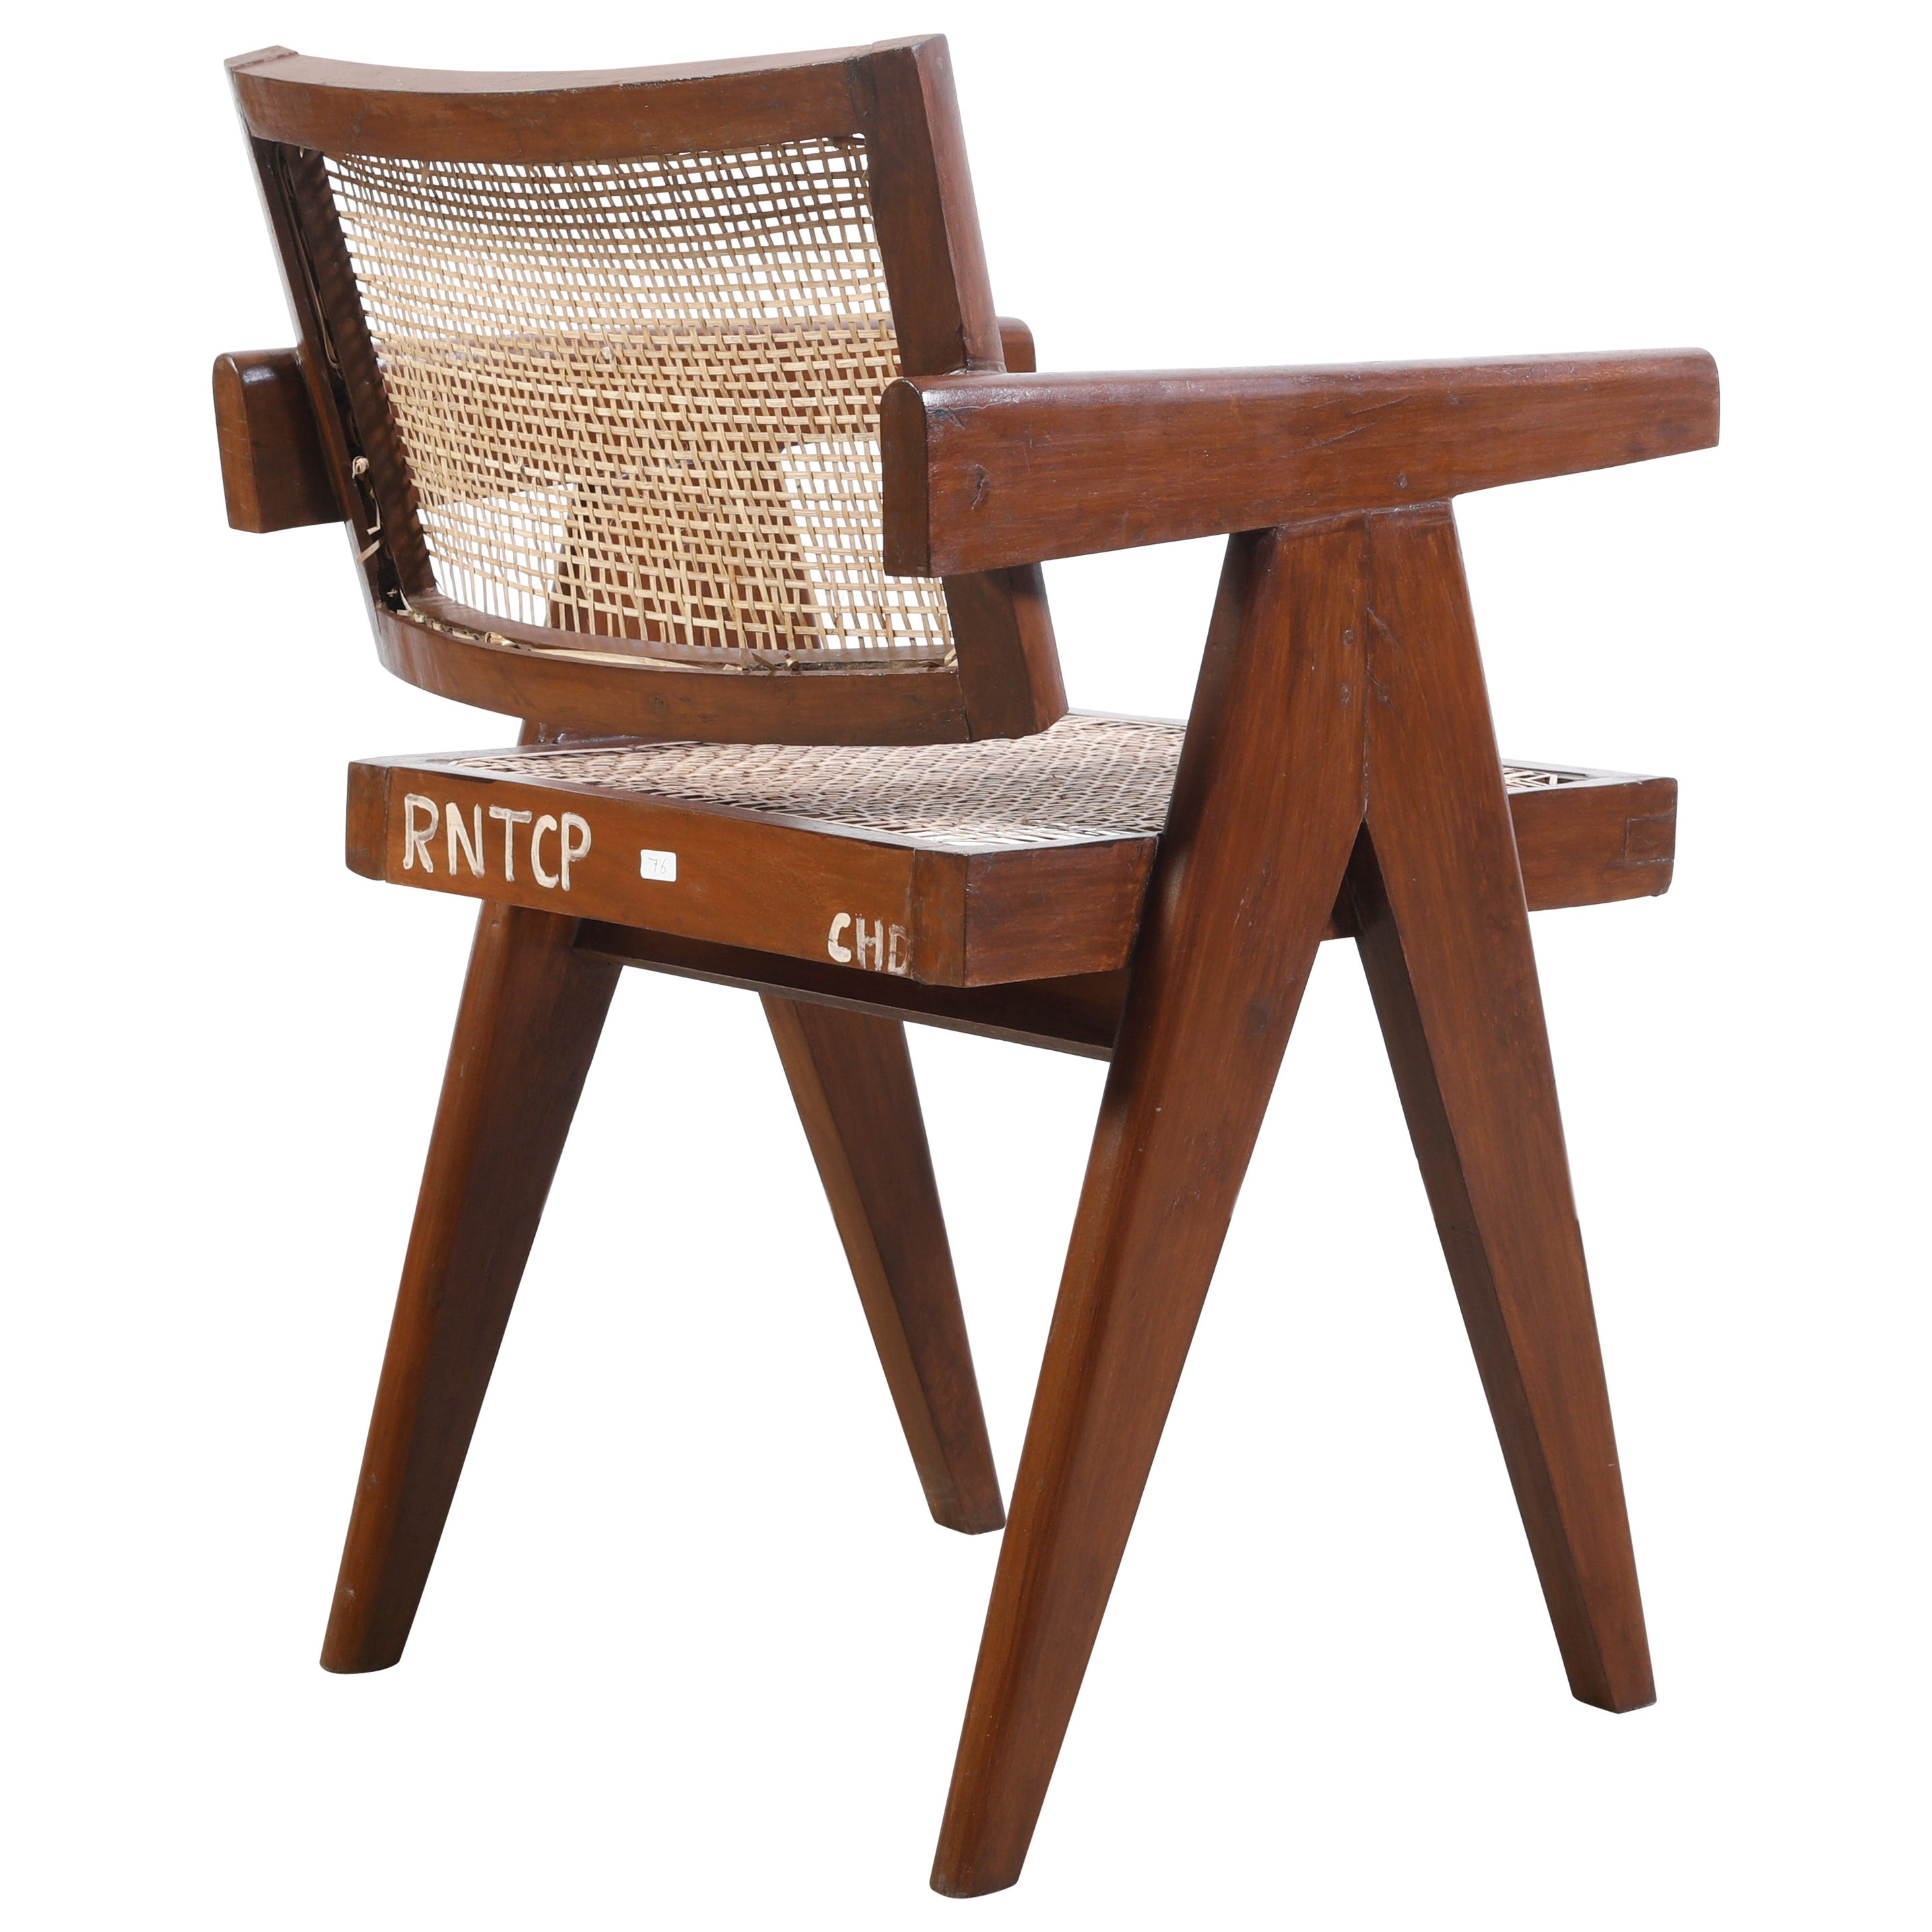 Pierre Jeanneret Office Cane Chair with Letters / Authentic Mid-Century Modern